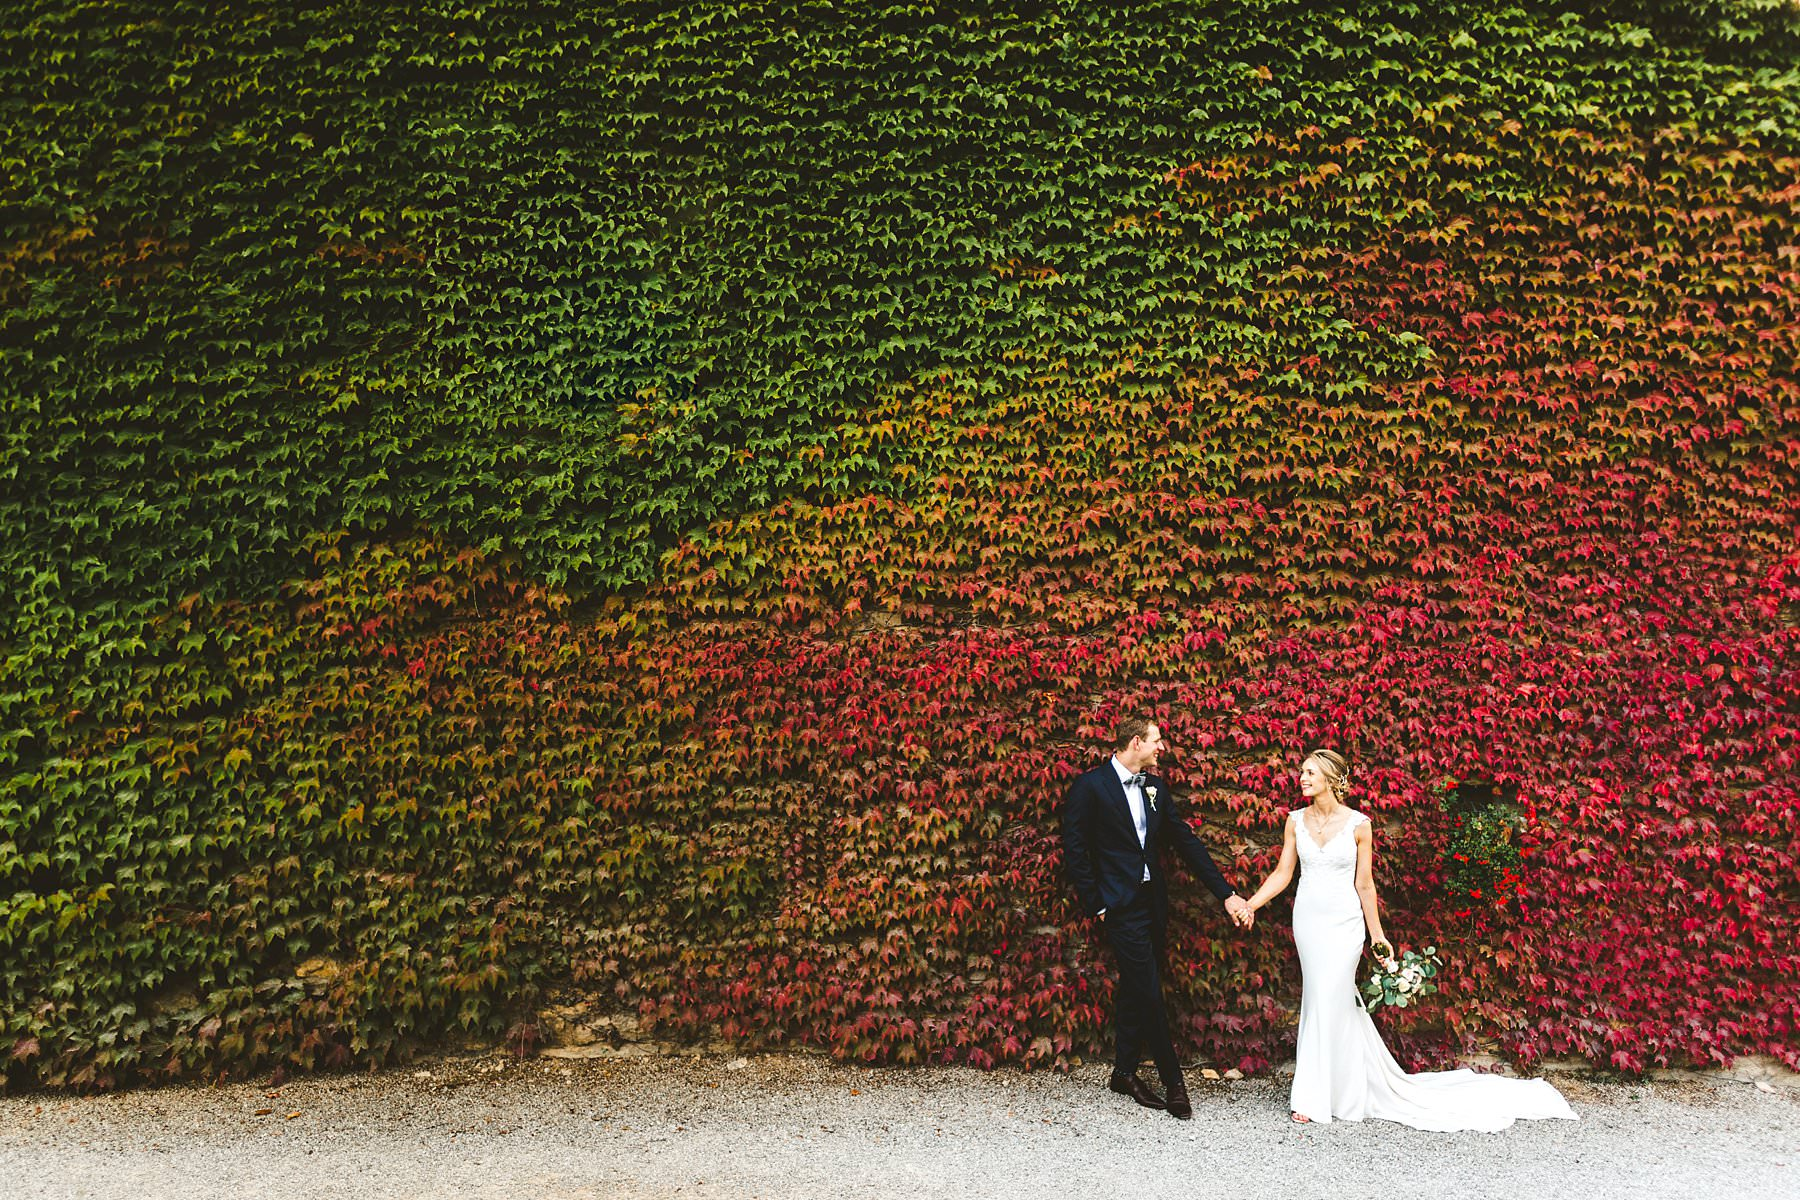 A special international wedding in the countryside of Umbria, Italy. This beautiful Australian couple dreamed this unforgettable day for a long time and finally they made it. Bride and groom portrait at stunning wall covered in red ivy leaves near Villa Monte Solare, a historic residence tucked in the countryside among rolling hills